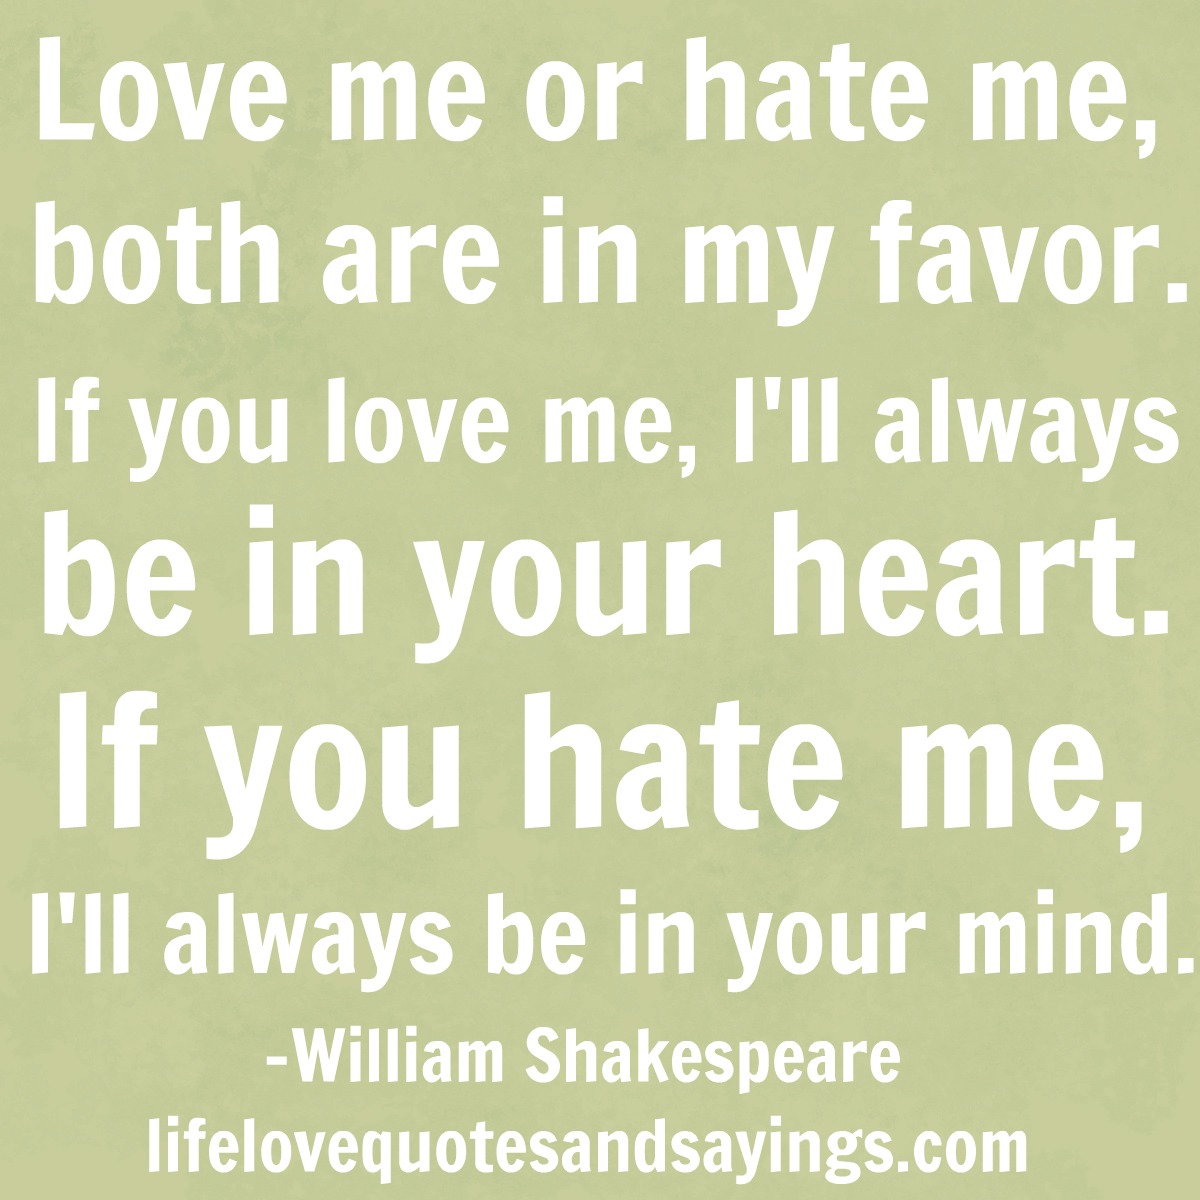 Love Quotes: Shakespeare Love Quotes And Sayings. QuotesGram